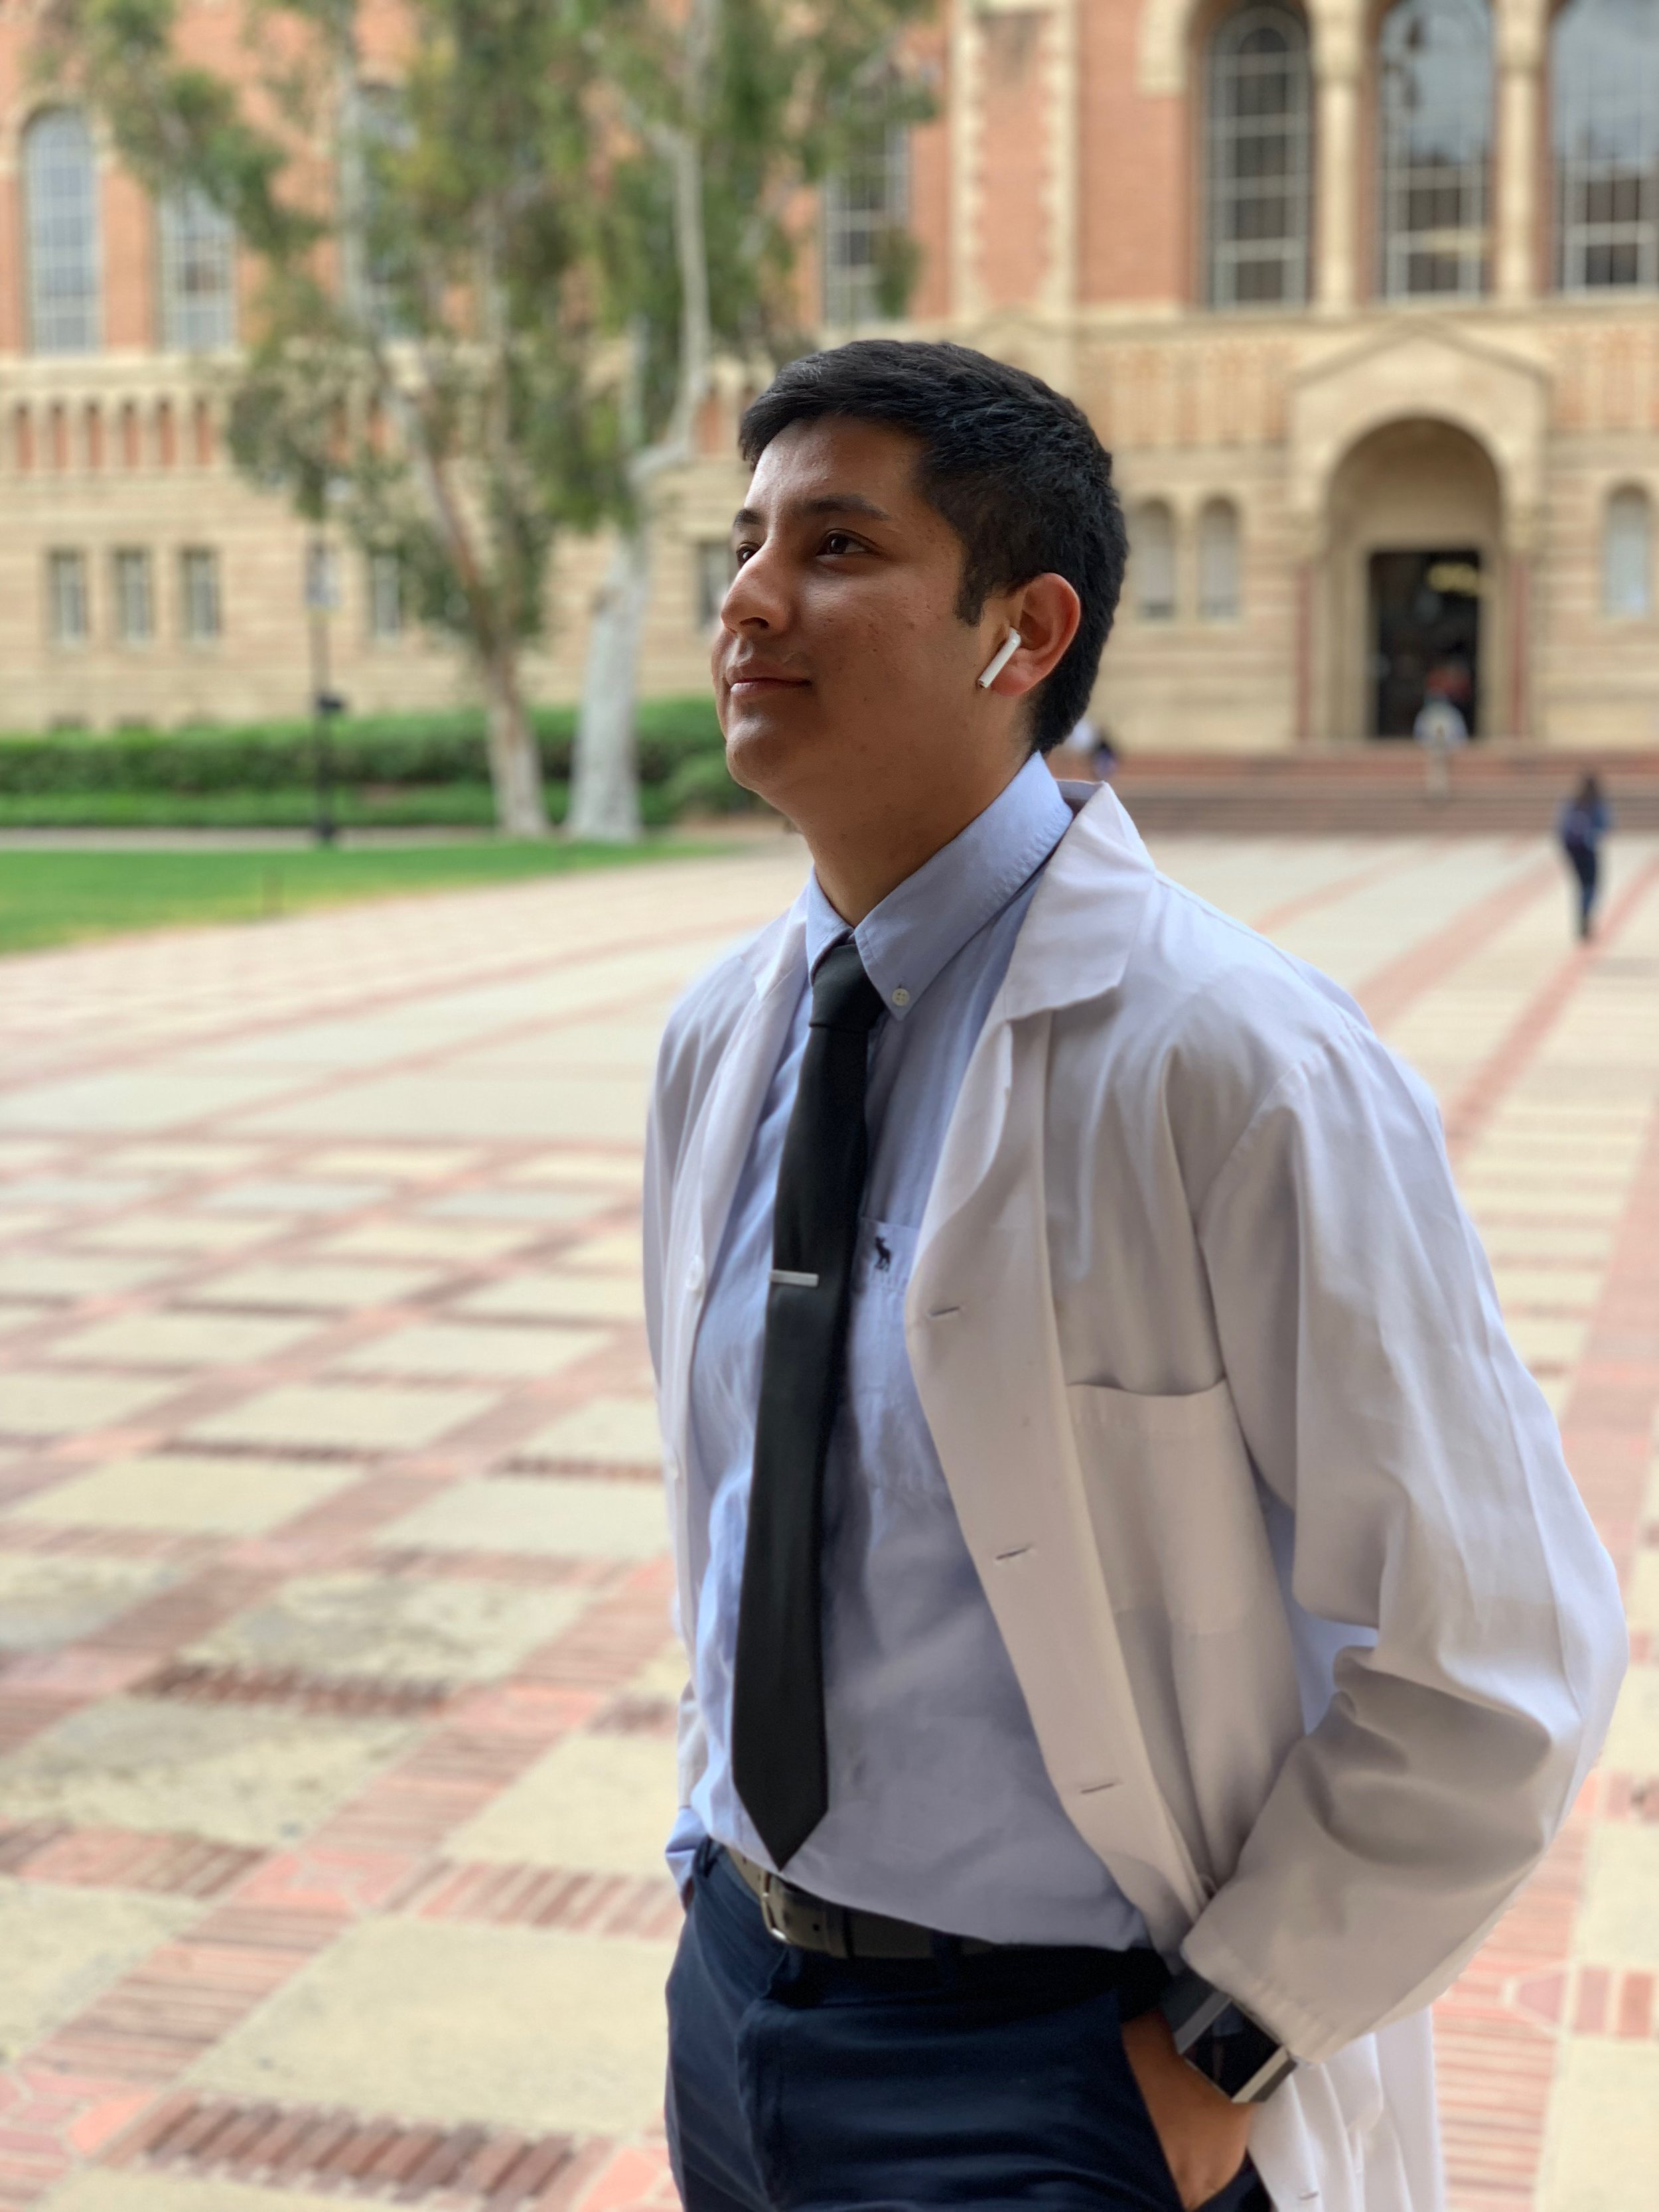 Johnny Diaz is an undergraduate majoring in Molecular, Cell & Developmental Biology with a minor in Biomedical Research. Johnny is supported by a UCLA Center for Academic & Research Excellence (CARE) Scholarship to investigate the effects of distinct oncogenes and oncogene combinations on prostate epithelial cells.